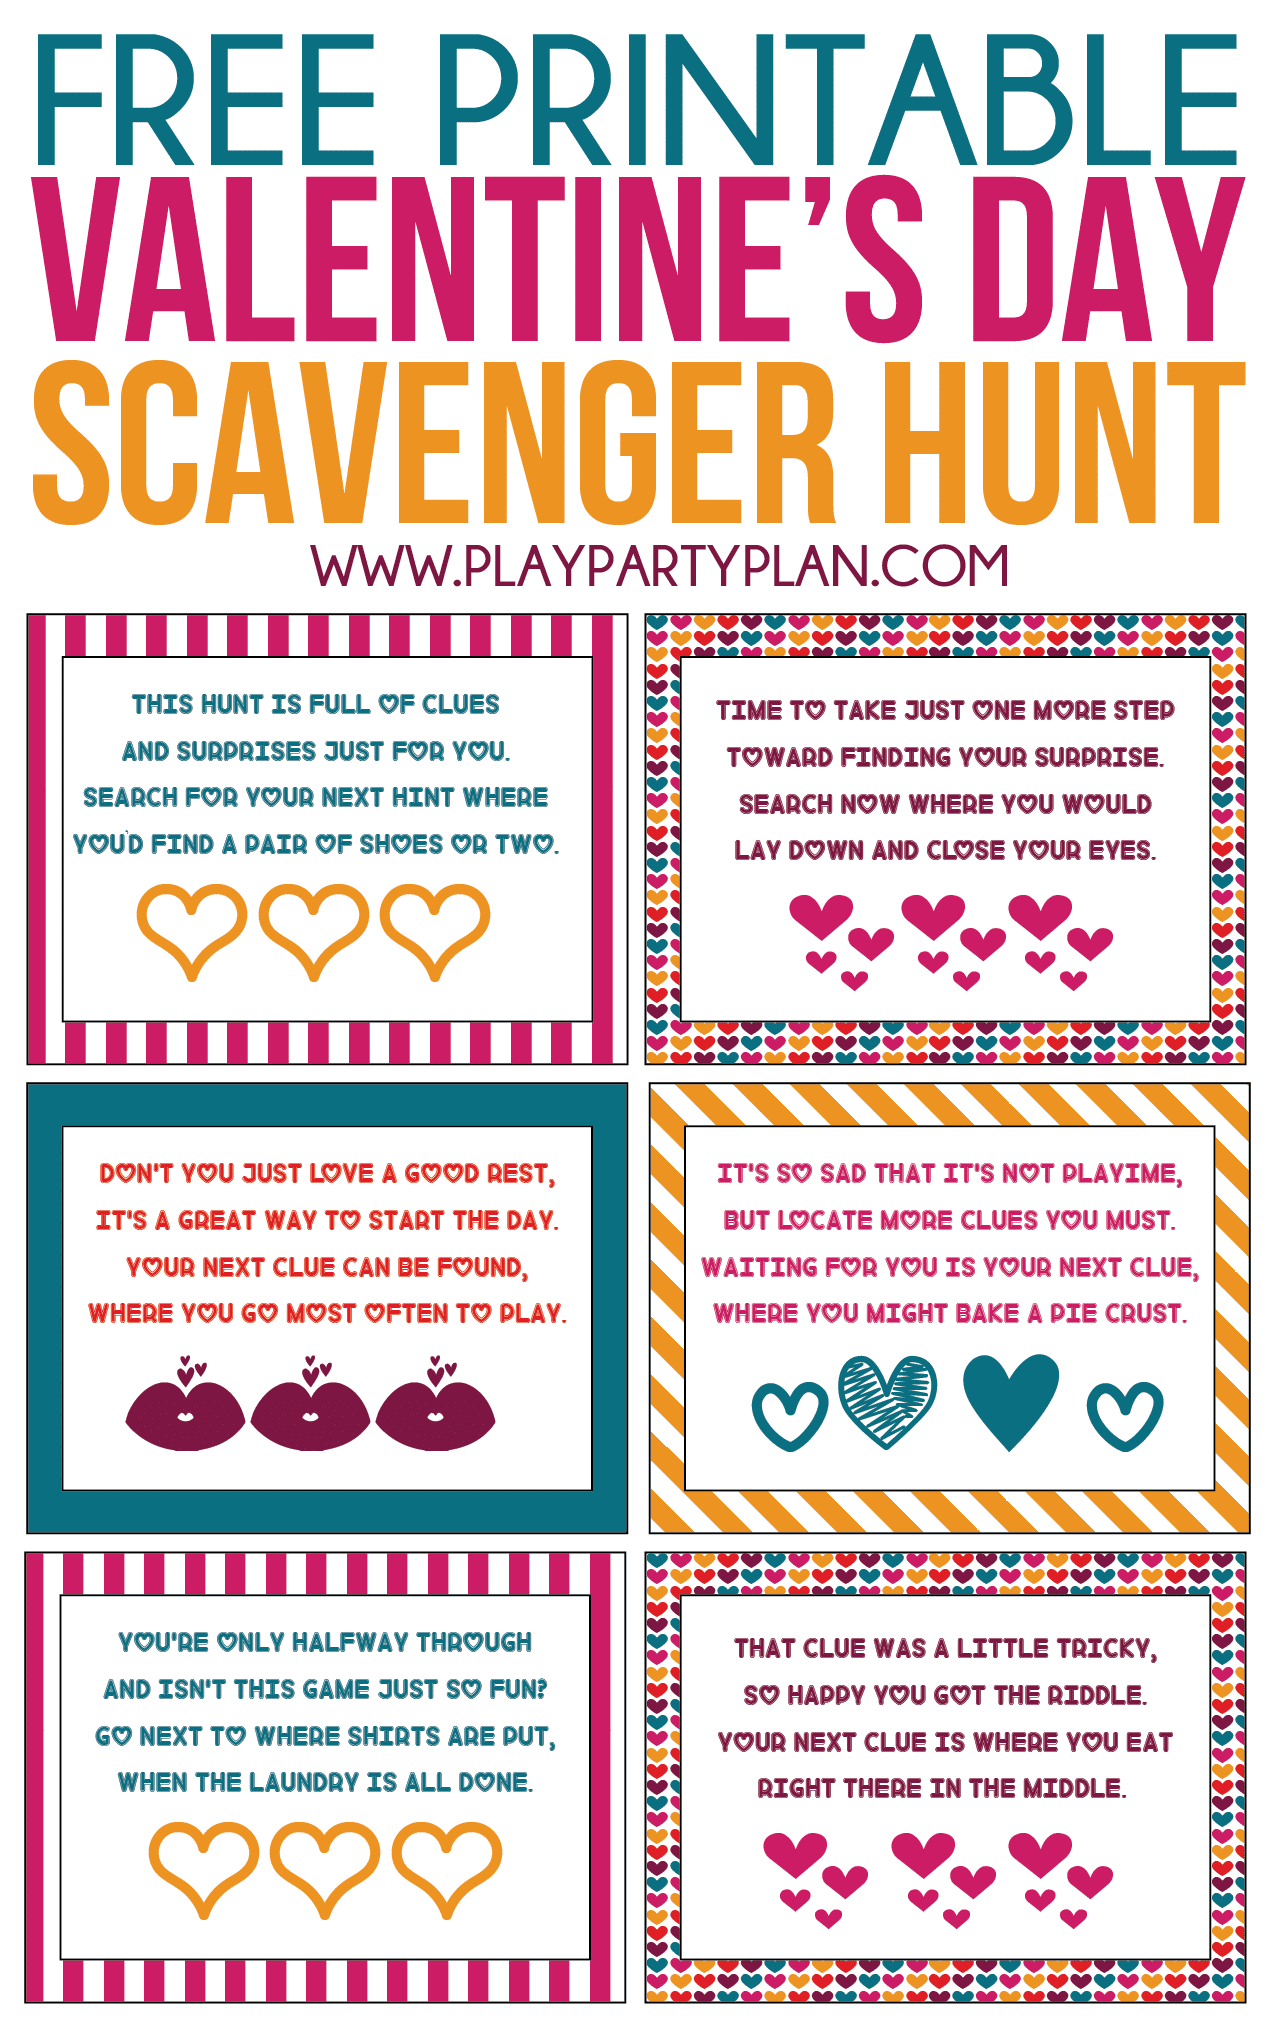 Free Printable Valentine's Day Scavenger Hunt Kids & Adults Will Love - Free Printable Treasure Hunt Games